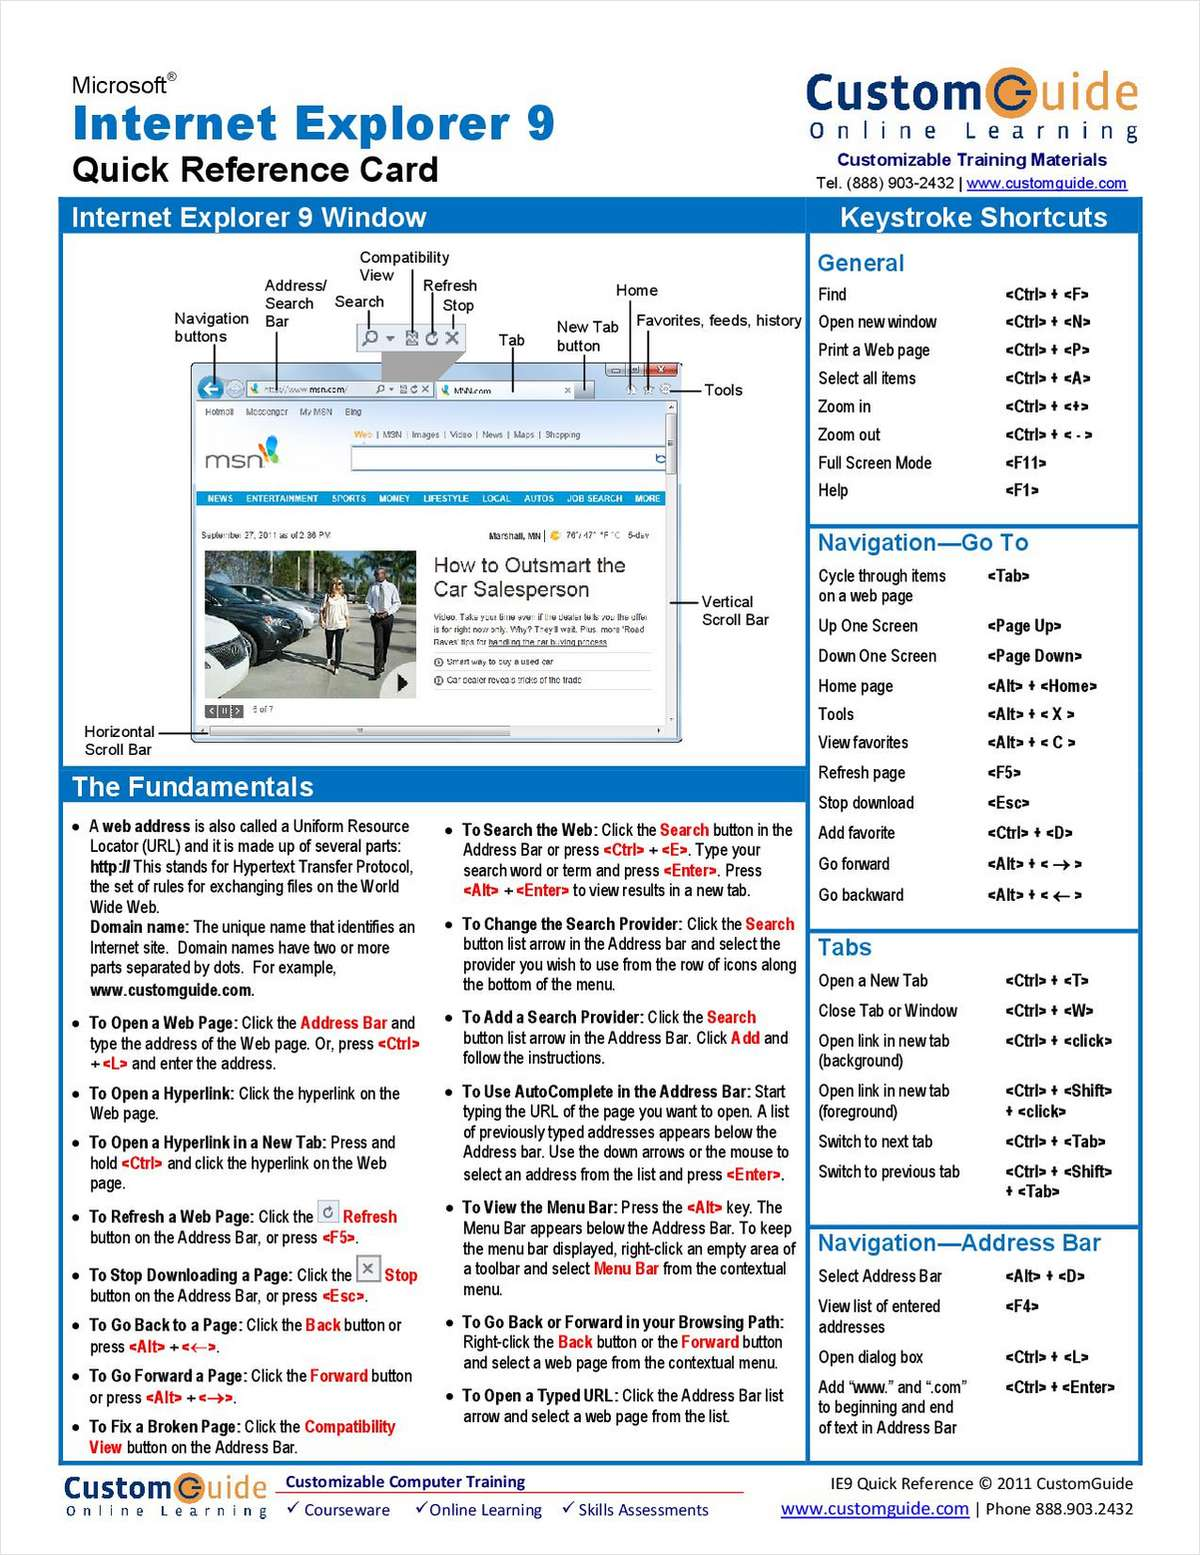 Microsoft Internet Explorer 9 - Free Quick Reference Card